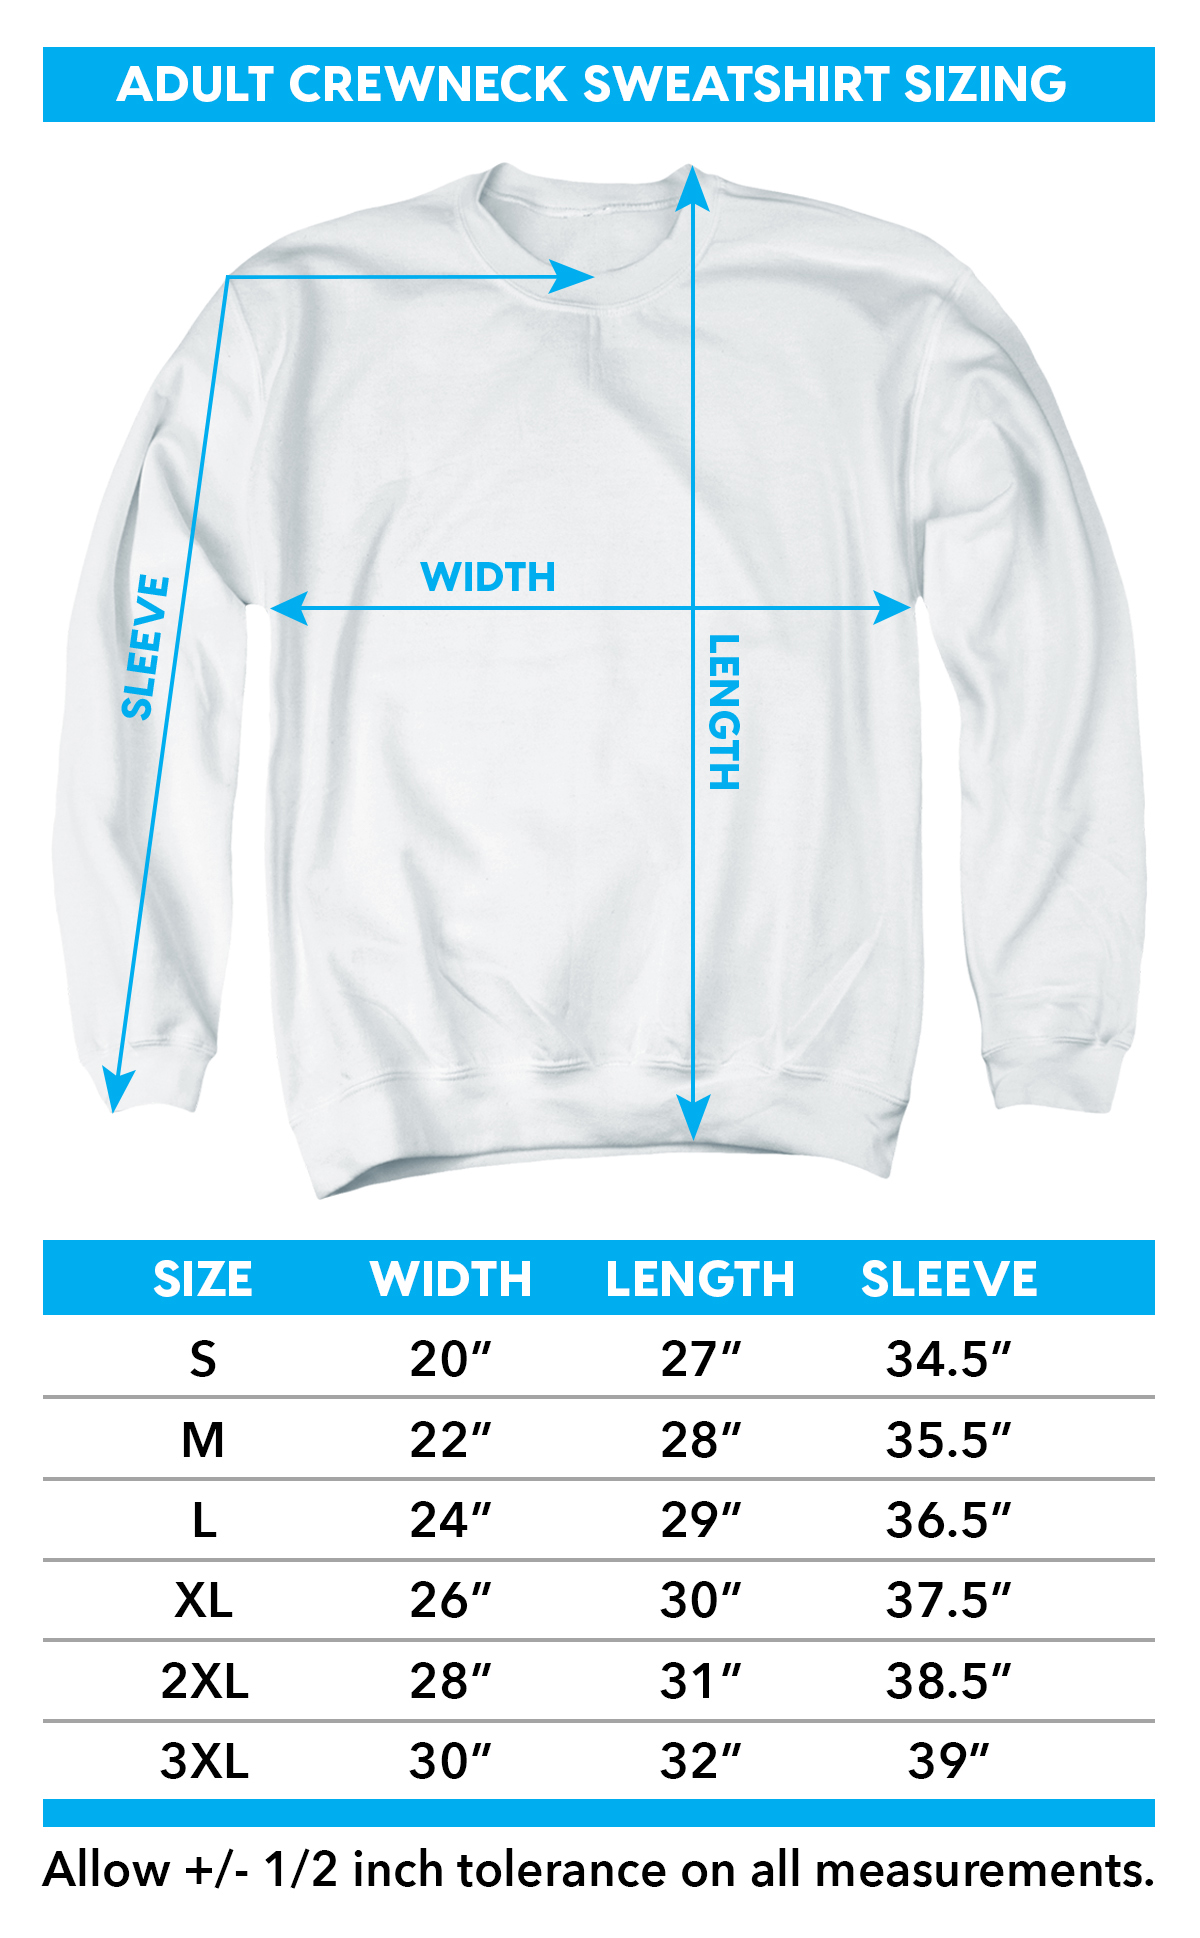 Sizing chart for the Sealab 2021 Fignuts crewneck sweatshirt